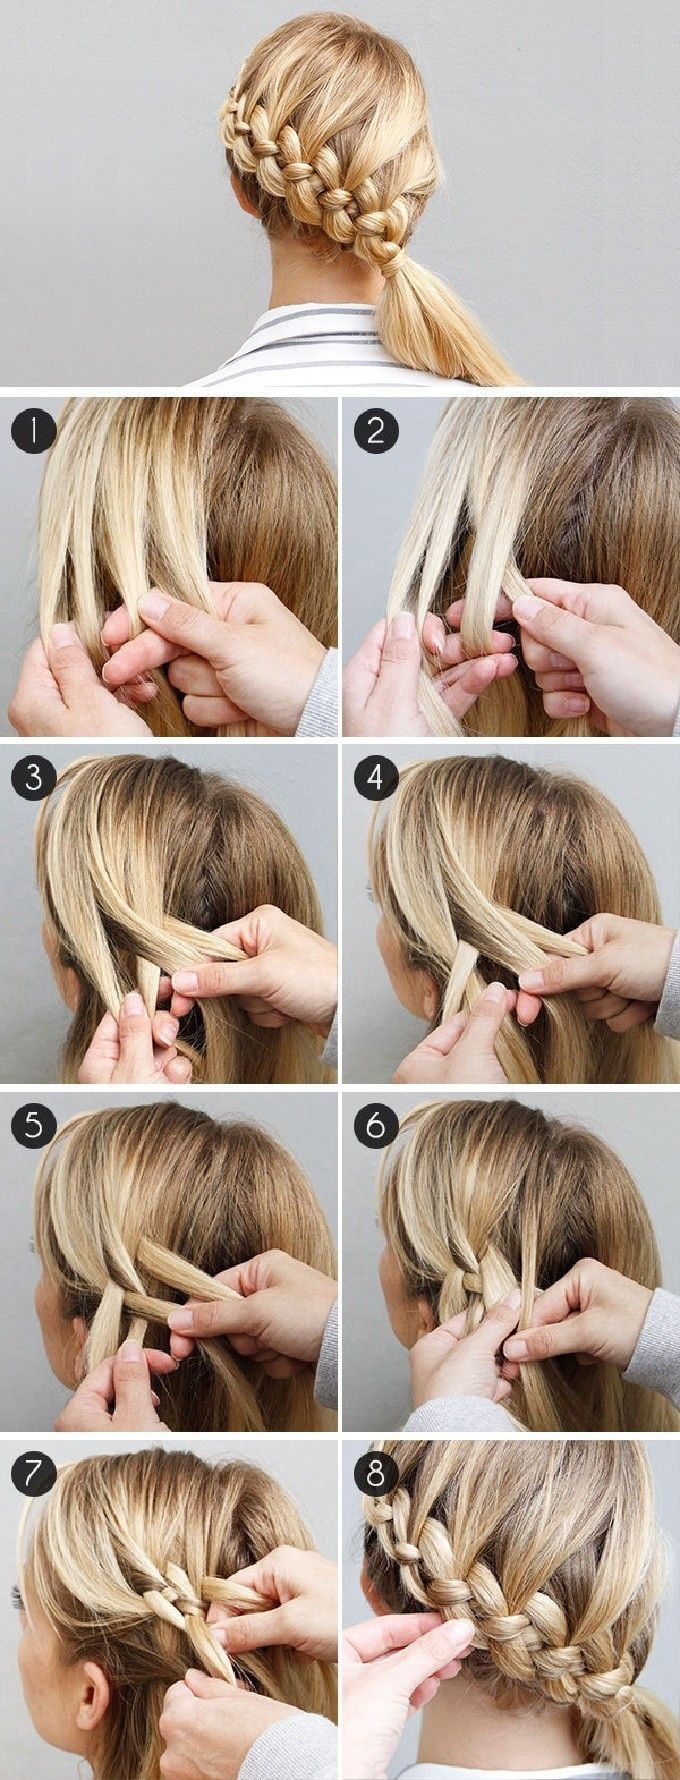 Popular on Pinterest  The 4 Strand Dutch Braid   Hairstyle Ideas     A step by step guide to 4 strand Dutch braids by Divine Caroline     The  Four Strand Braid Made Easy ish